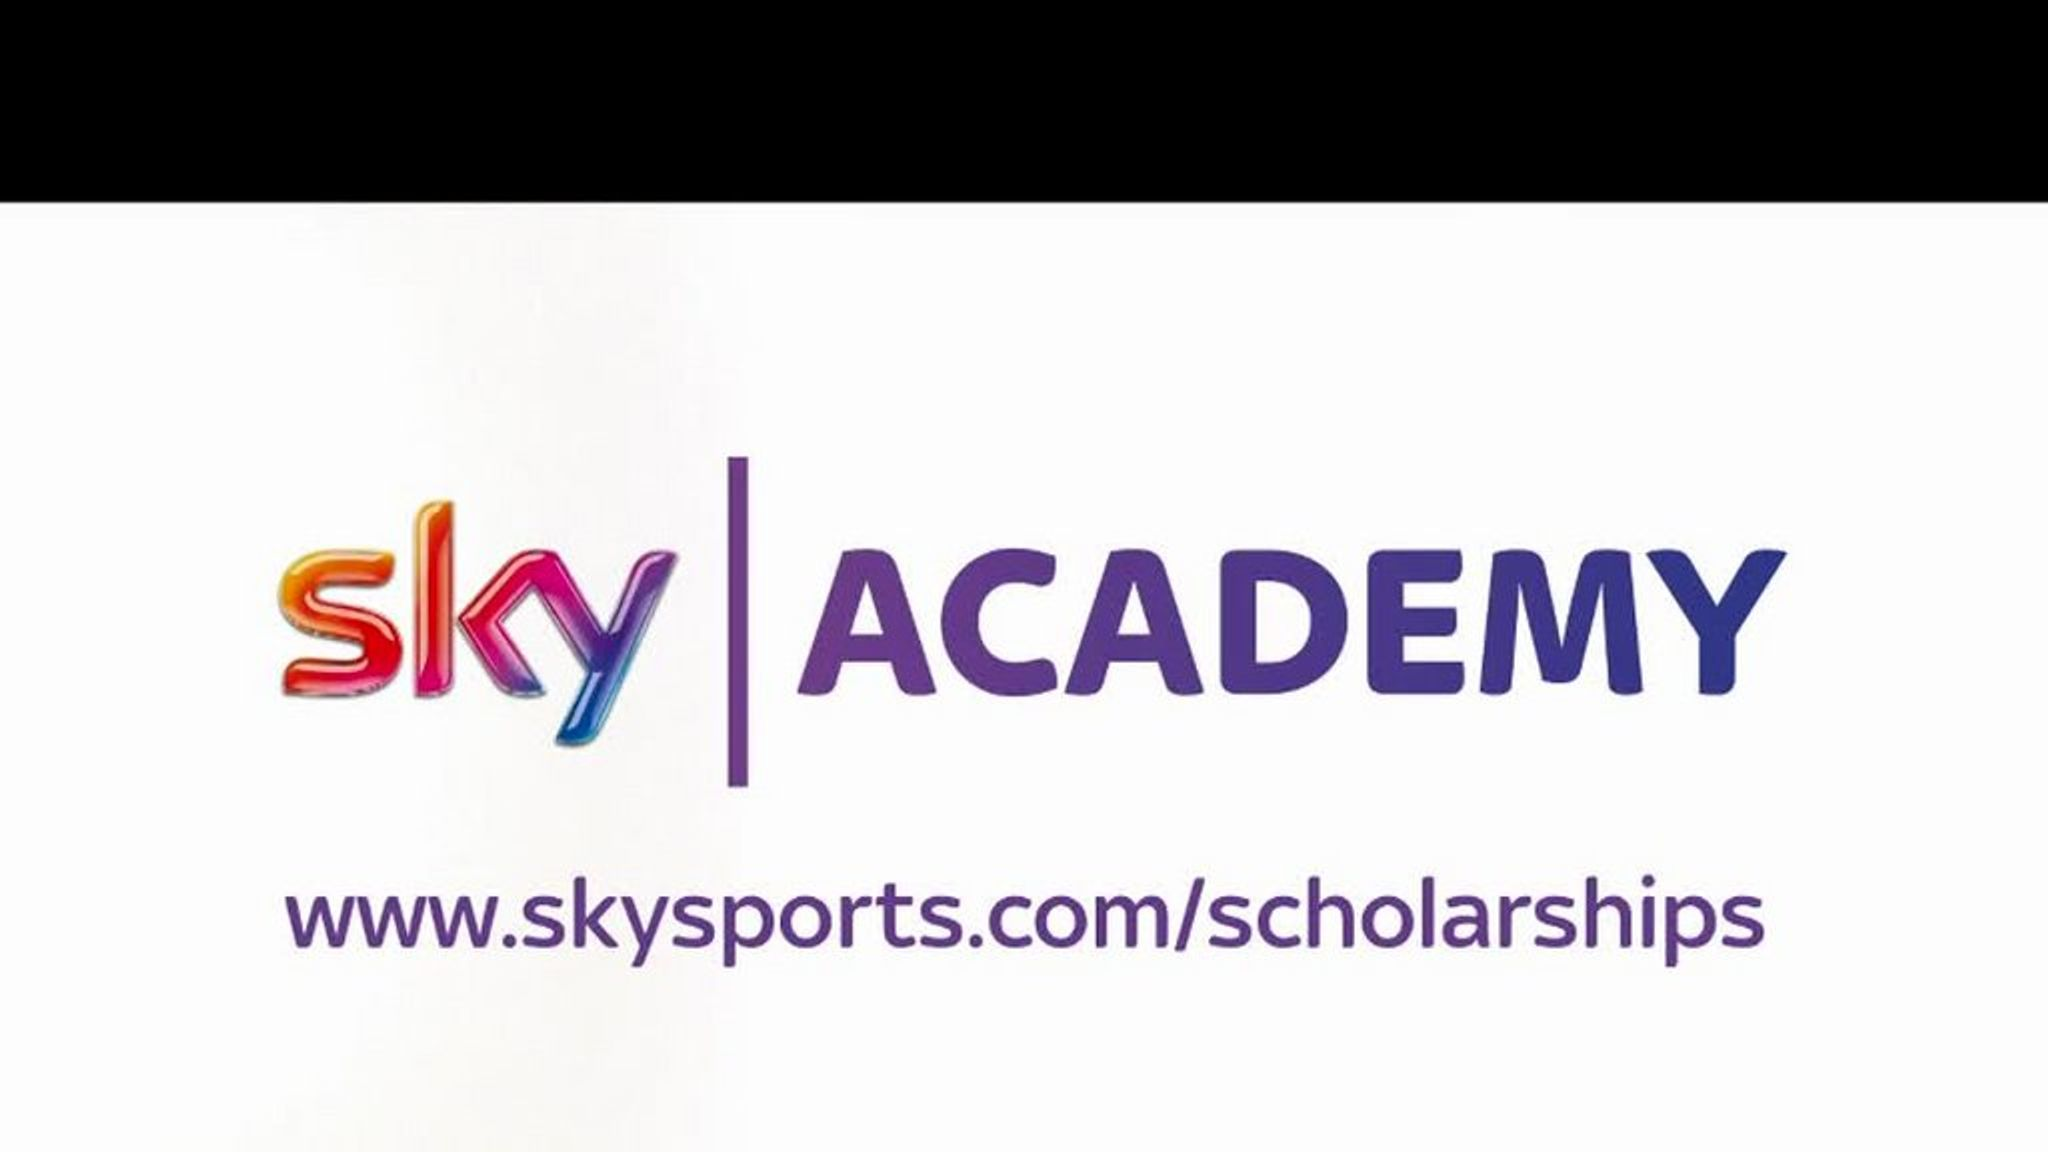 Sky Academy | Sports Scholarships